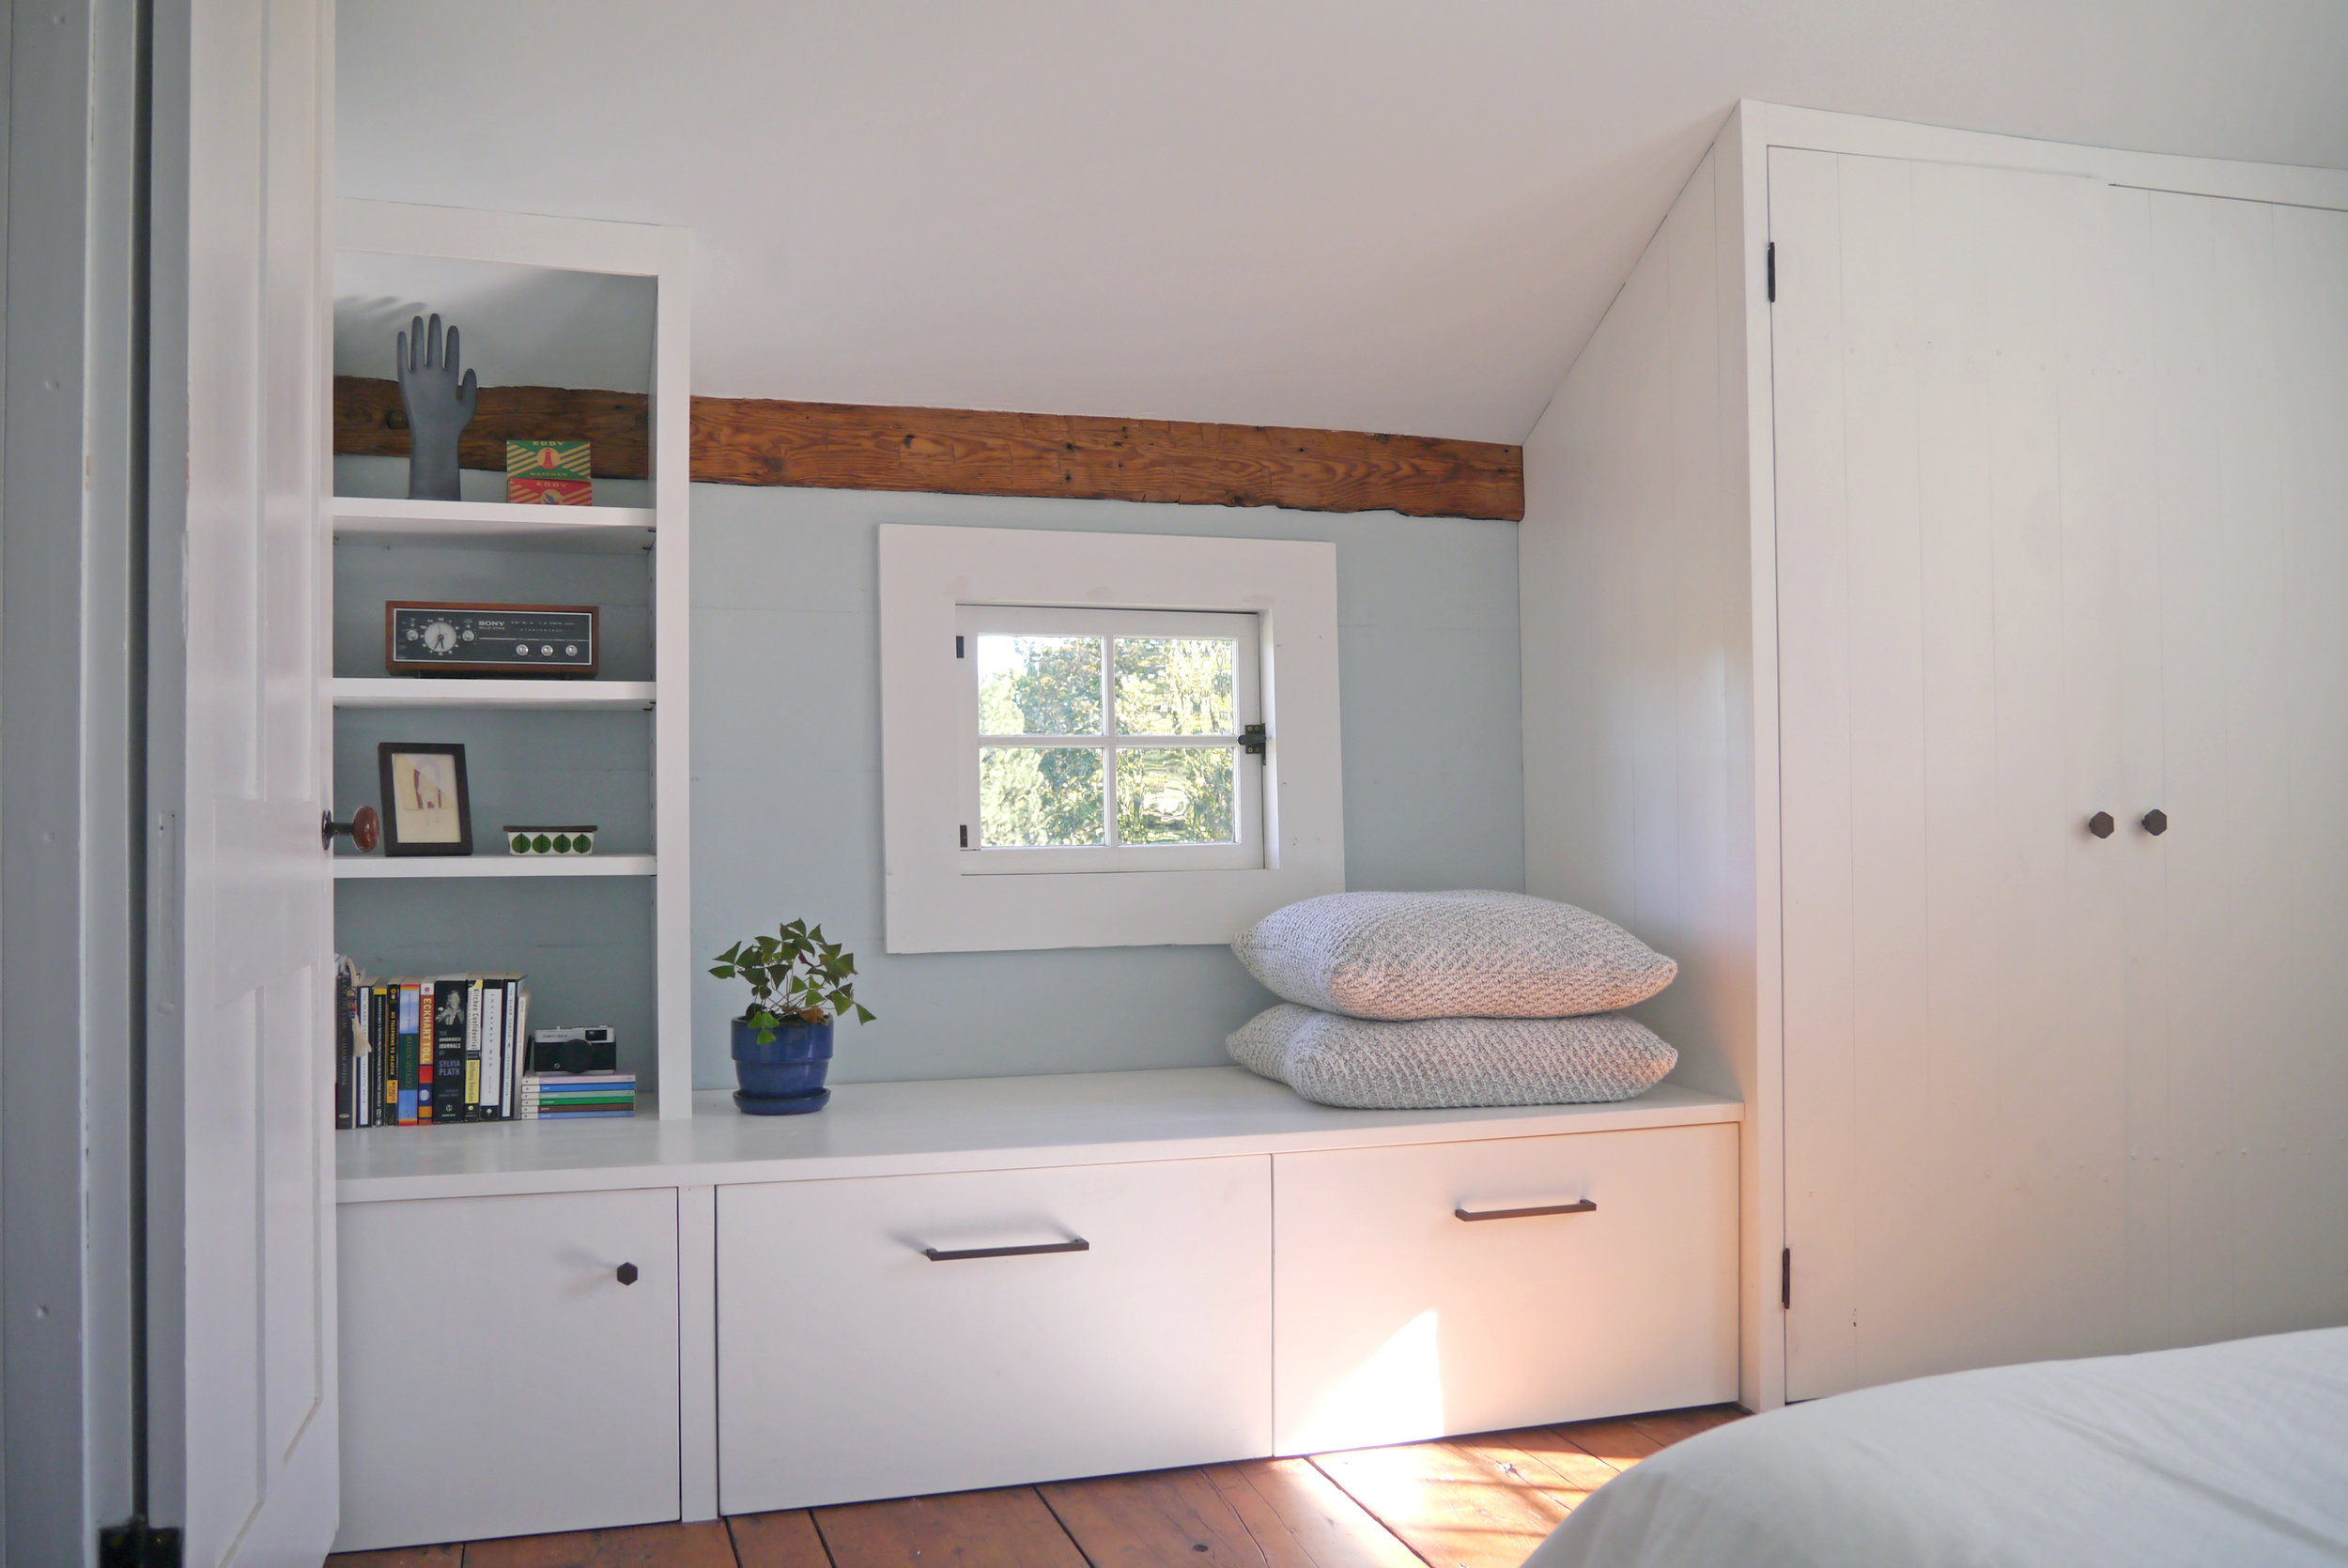 Master Bedroom - Built in closet and bench